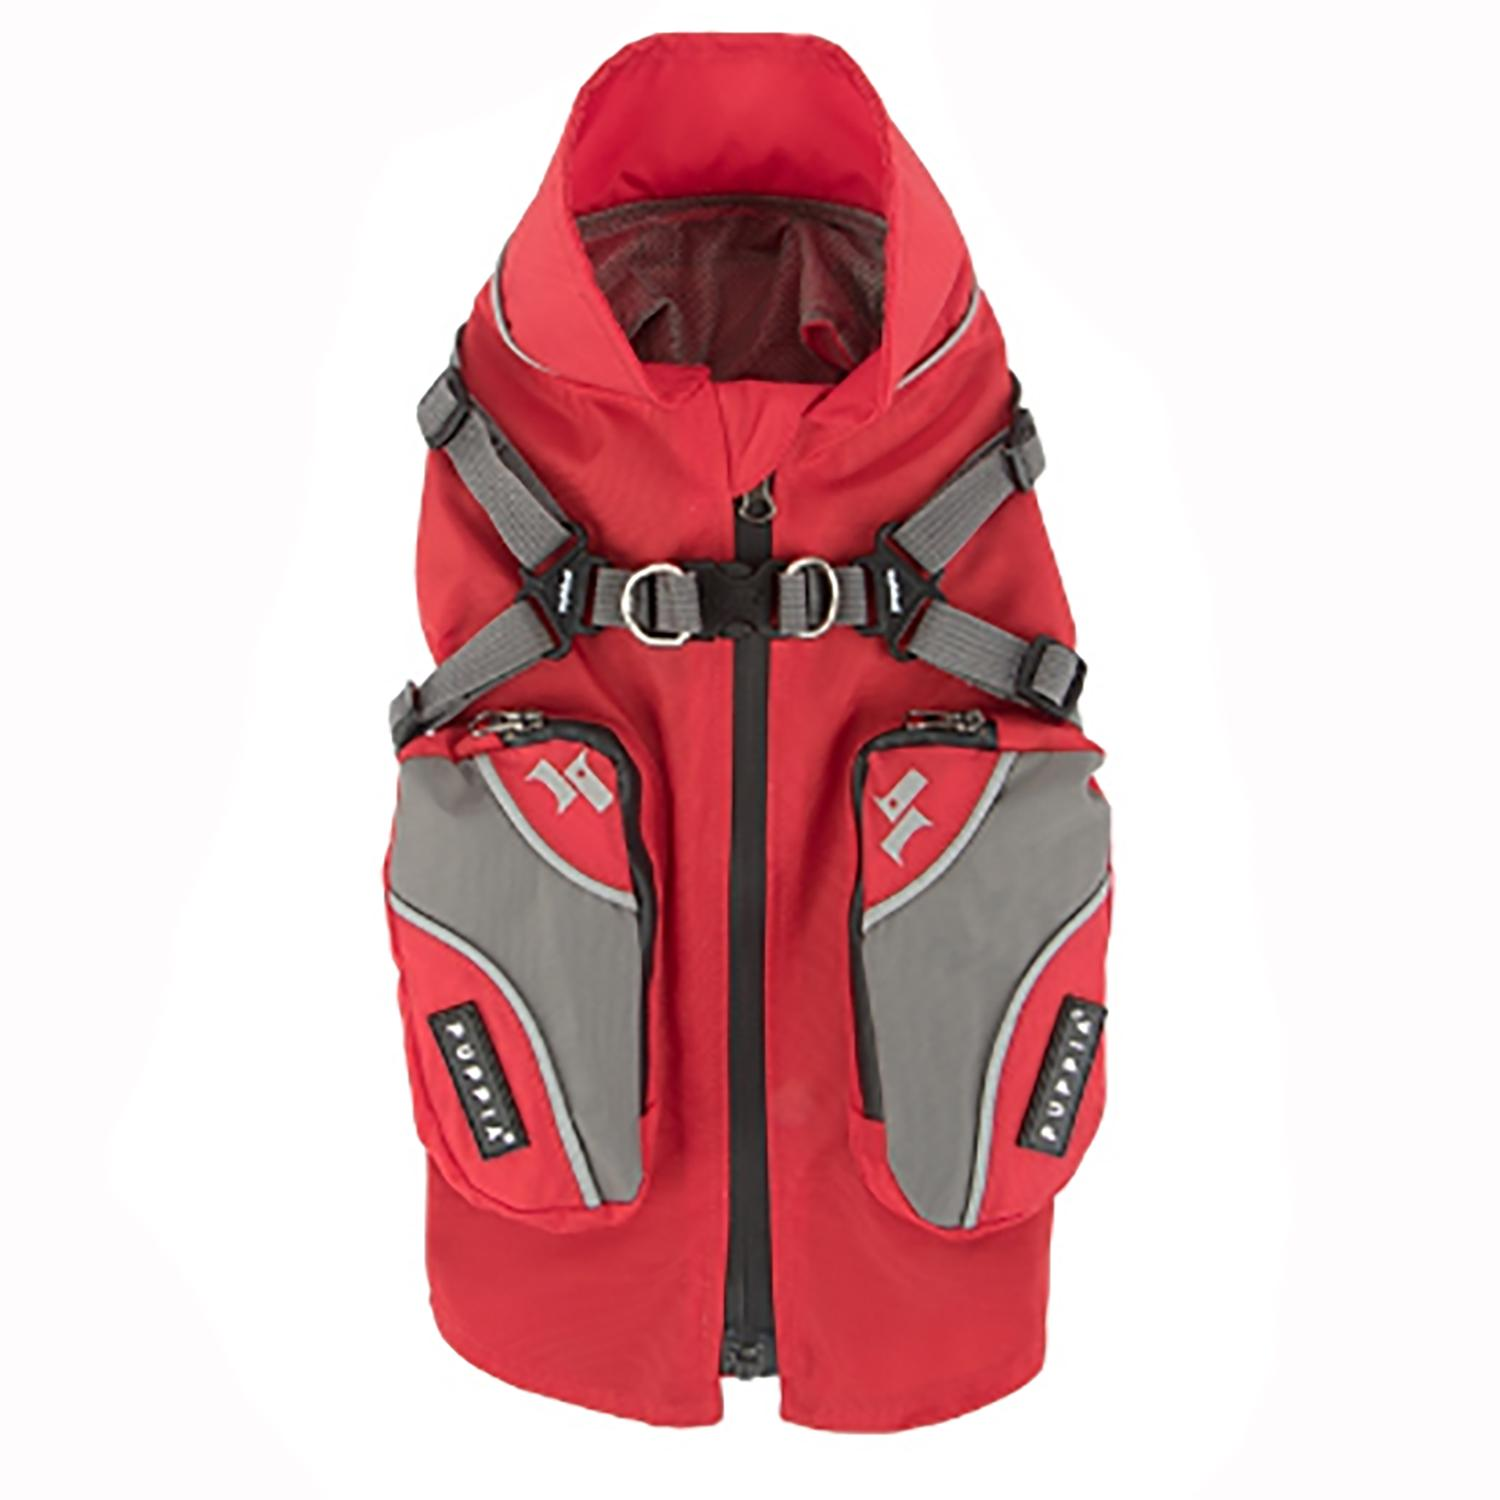 Teton Dog Vest by Puppia Life - Red